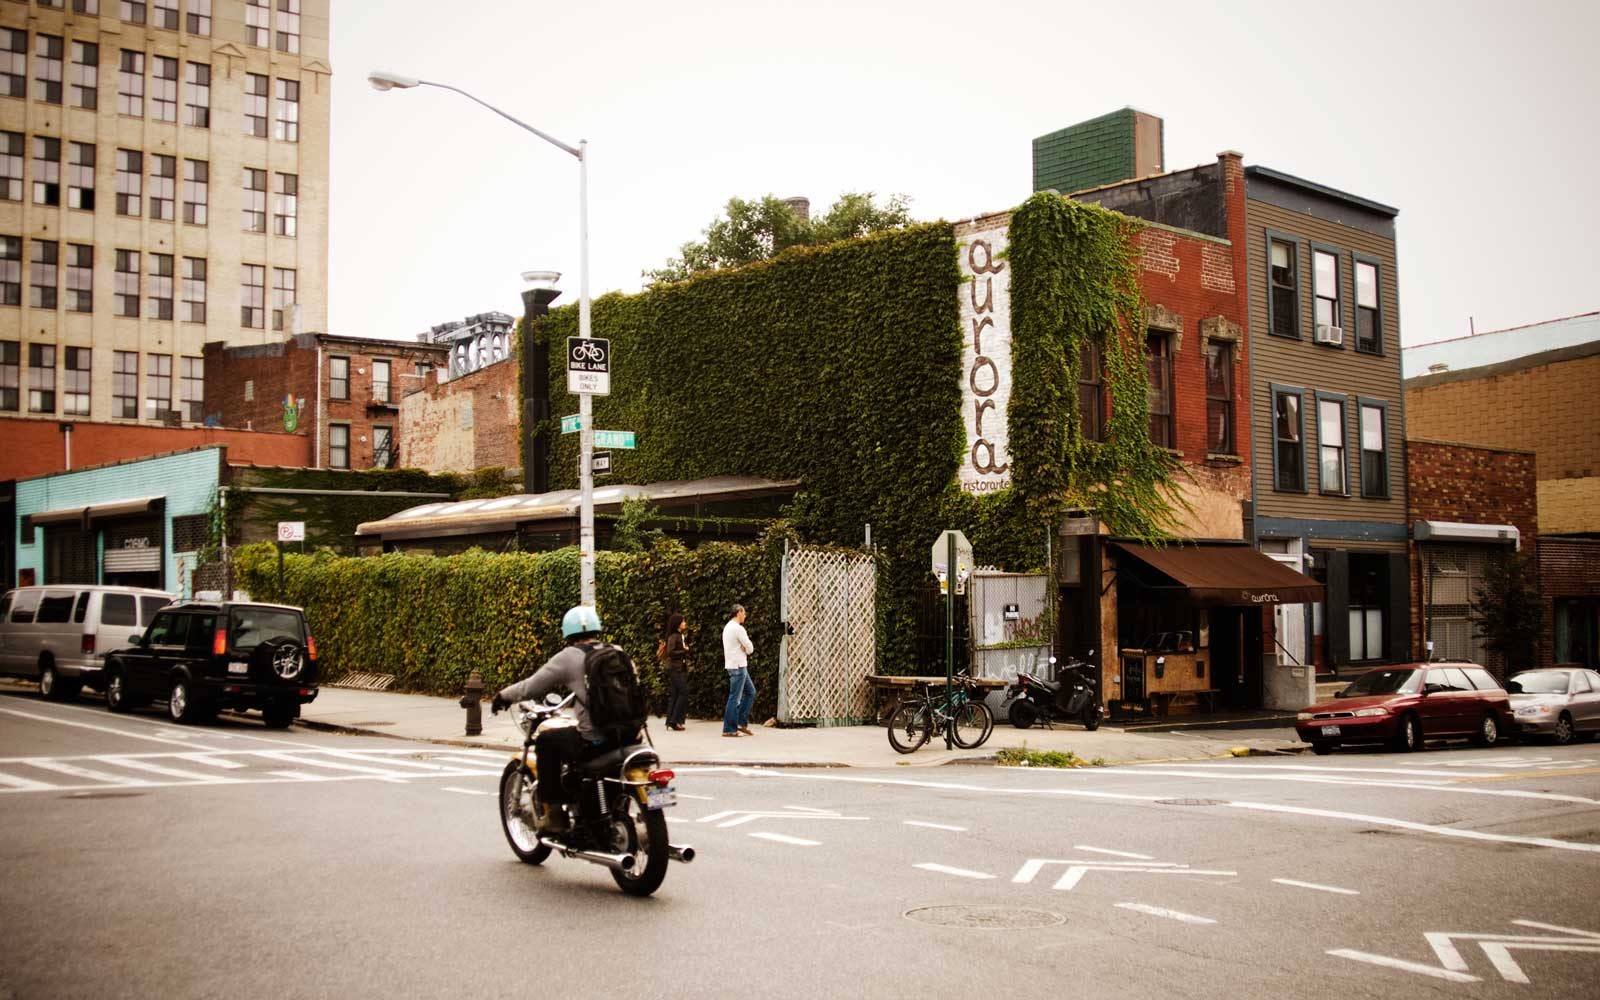 Man riding his motorcycle through an intersection in the streets of Williamsburg, Brooklyn, New York.